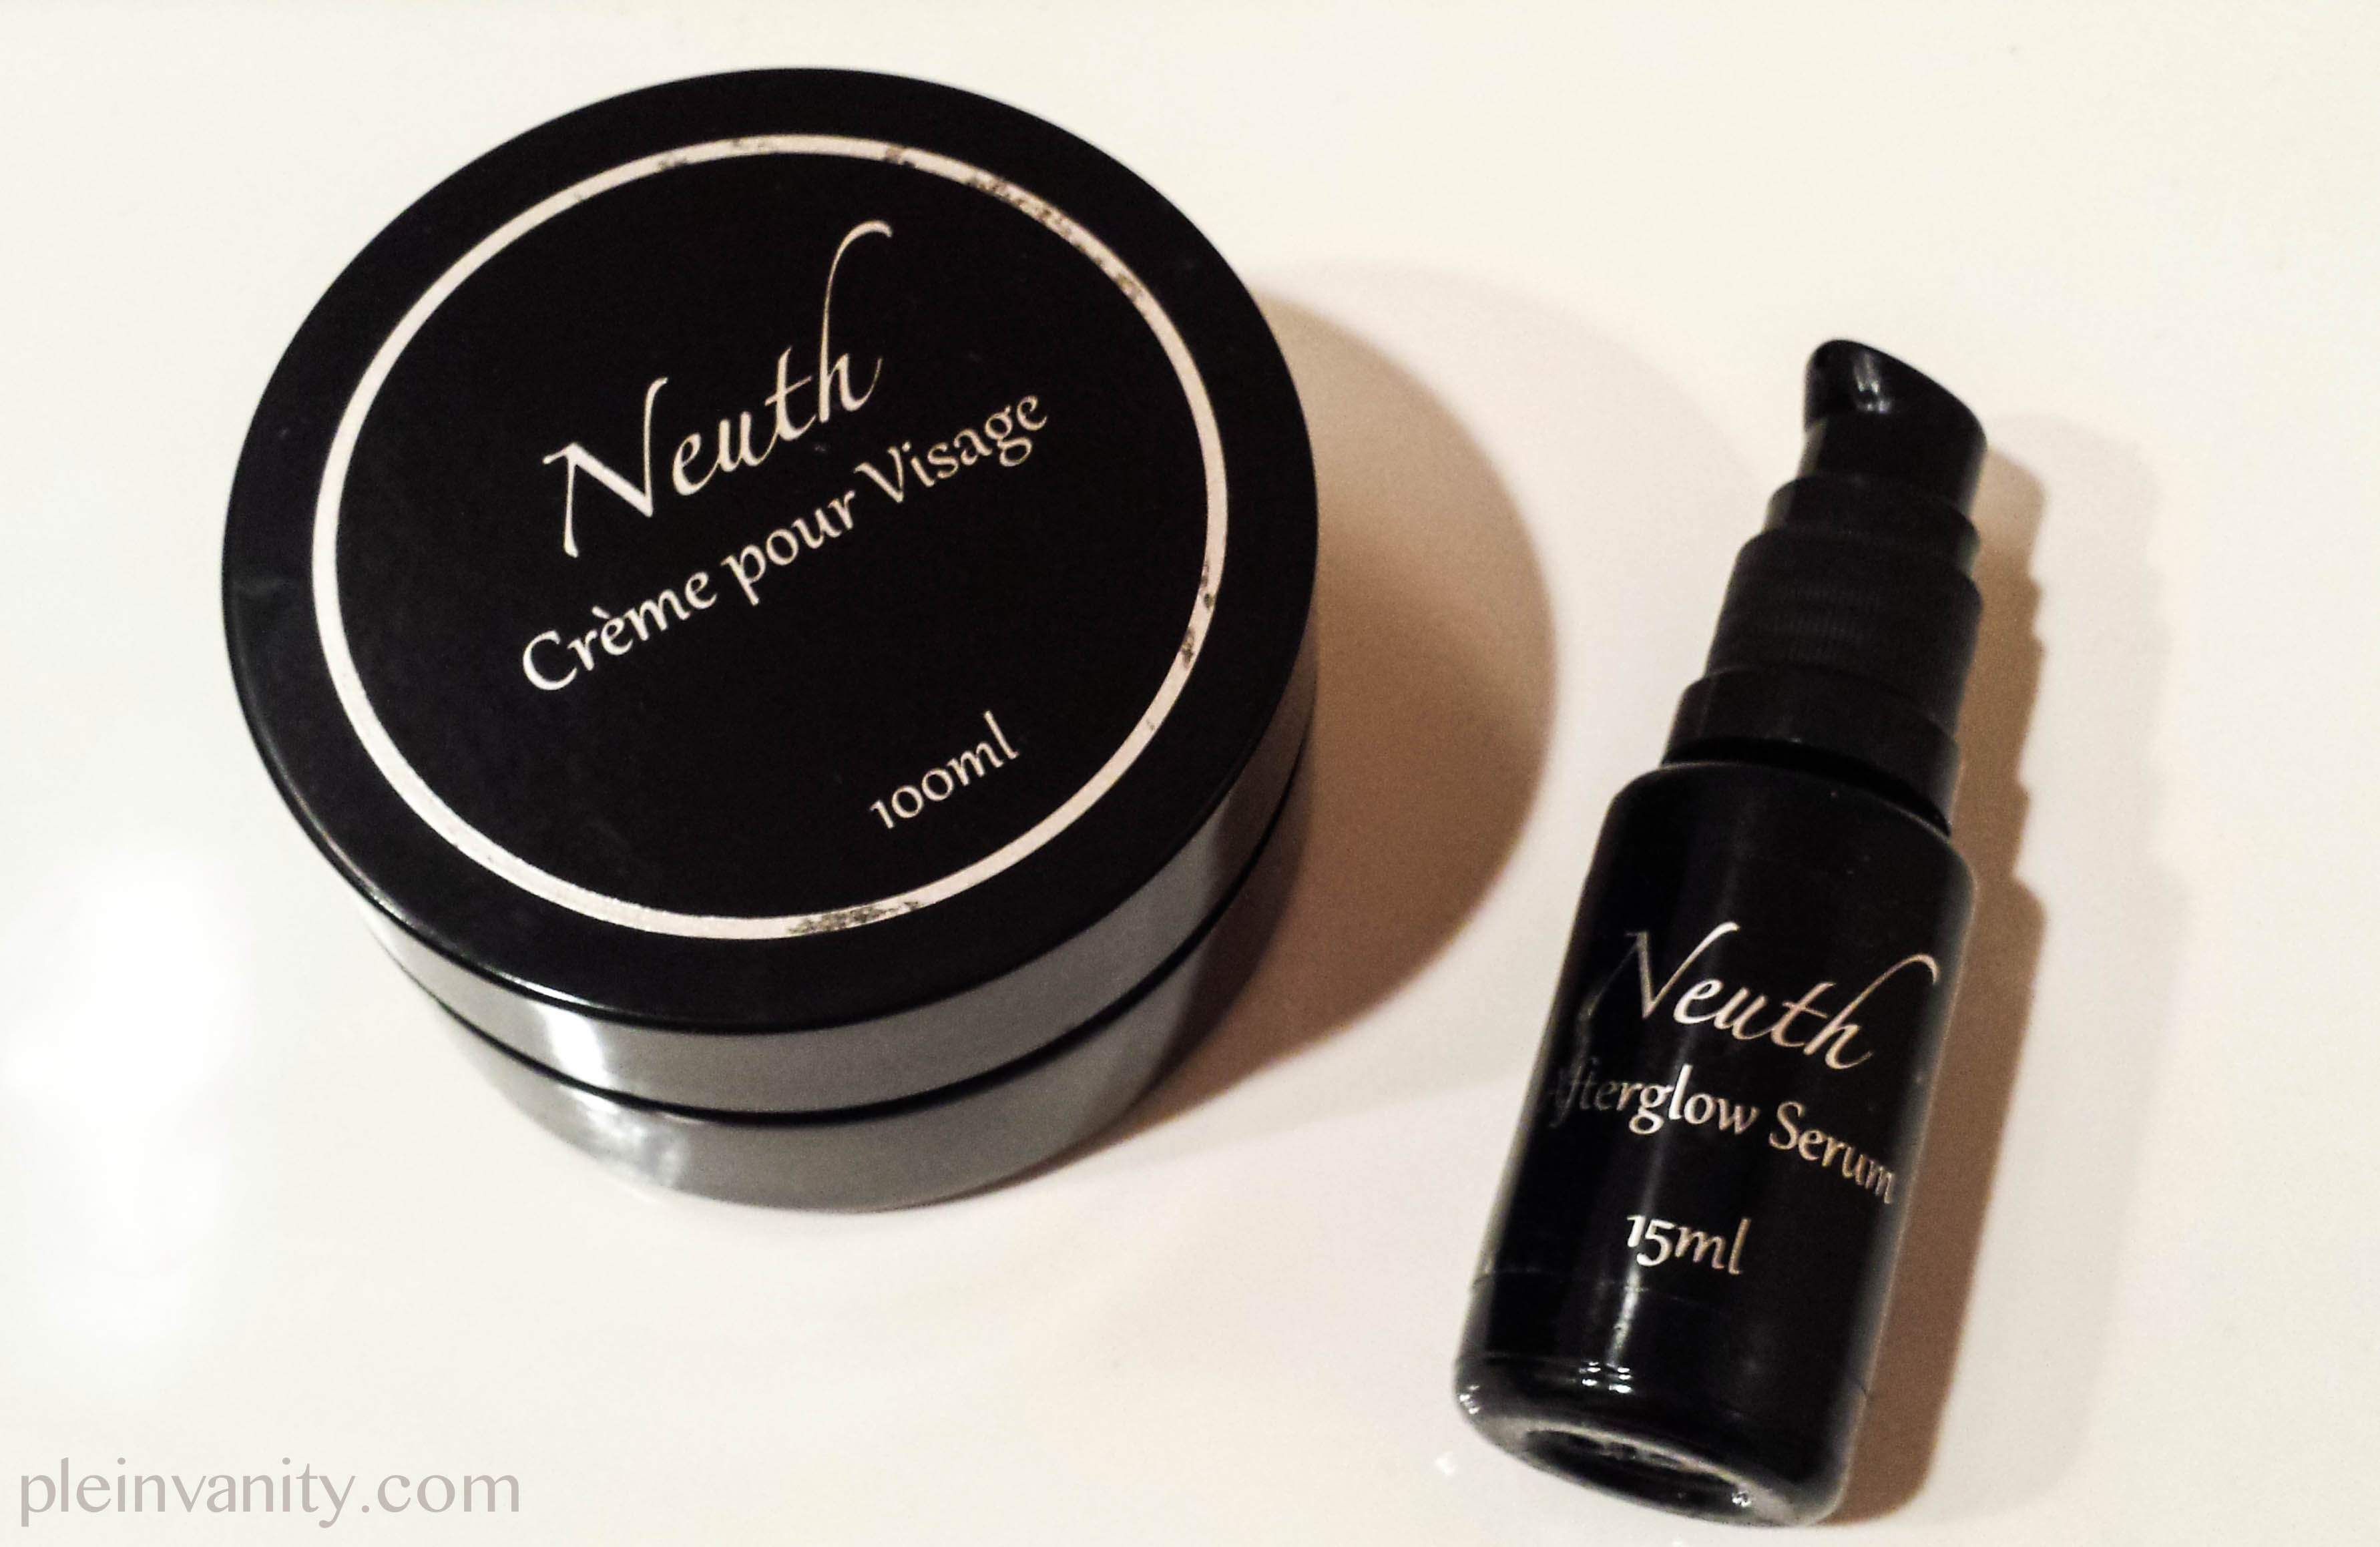 neuth creme pour visage and afterglow serum review discount plein vanity. Black Bedroom Furniture Sets. Home Design Ideas